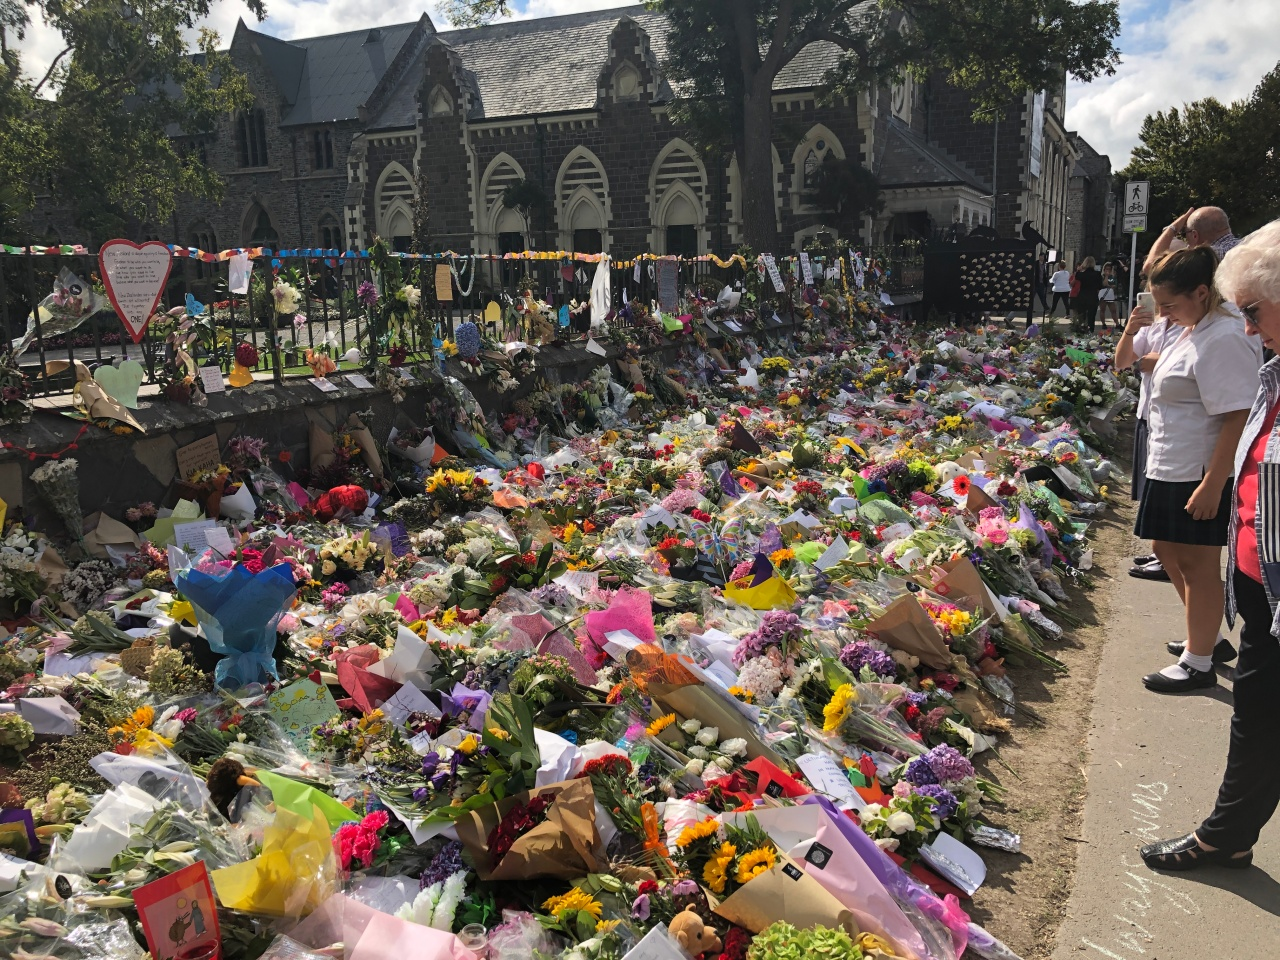 People looking at the massive amount of floral tributes on the ground against the fence at the Christchurch Botanical Gardens for the victims of the Christchurch terrorist attacks.